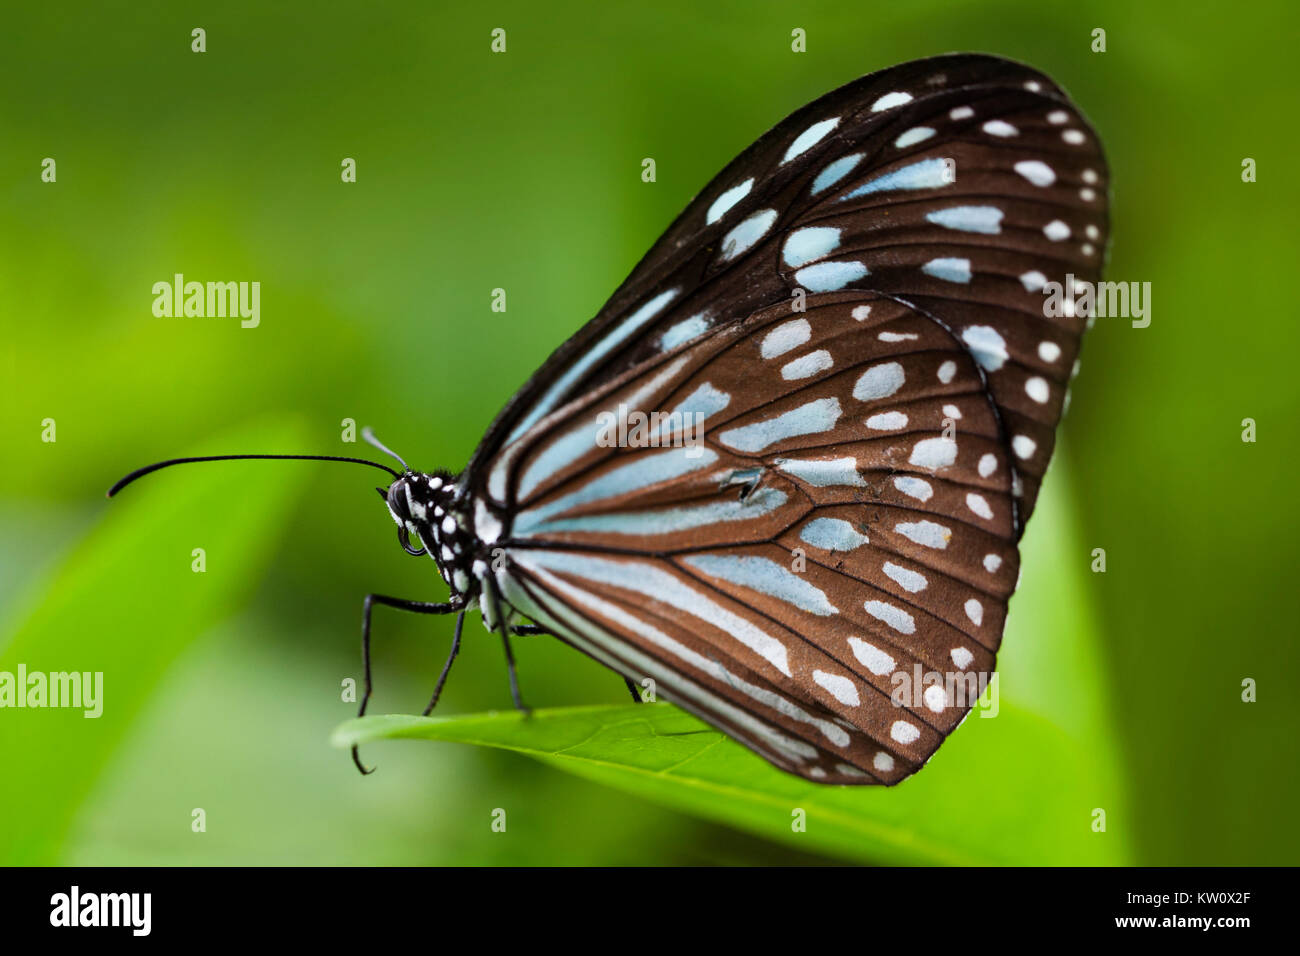 Close up of a Blue Tiger Butterfly, Tirumala limniace, on a leaf in Ishigaki, Japan. - Stock Image